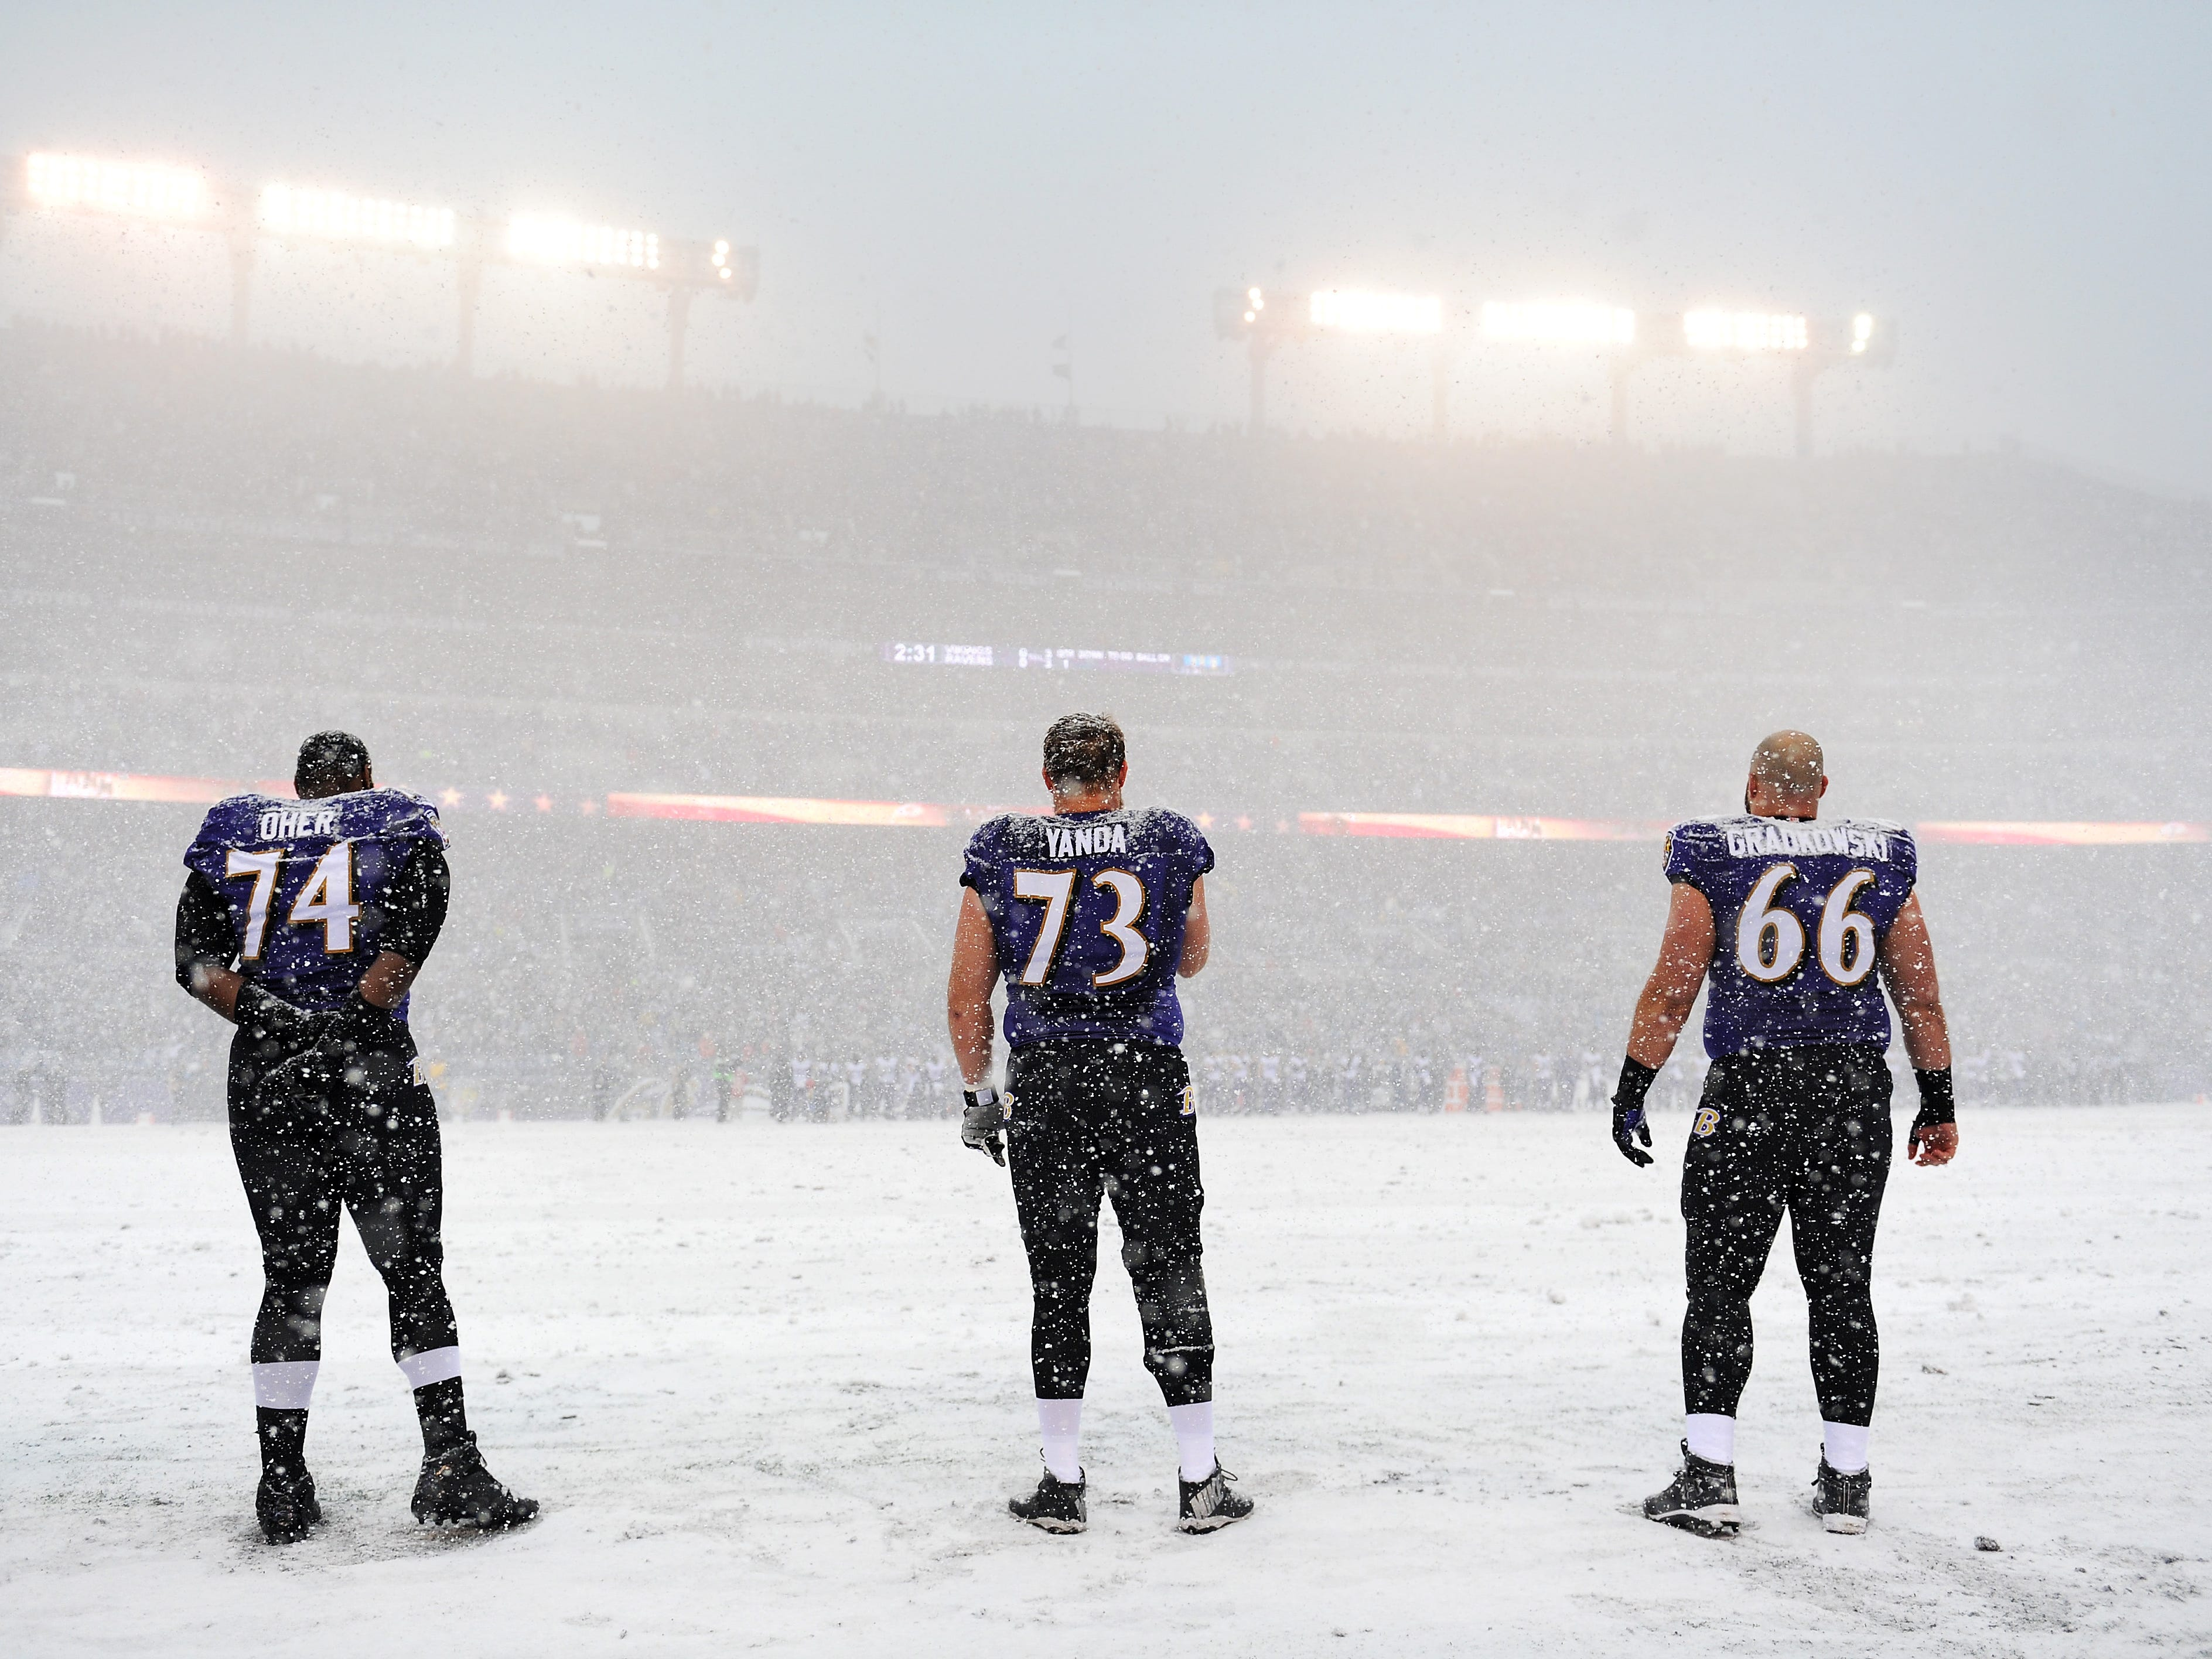 Dec. 20, 2013: The Baltimore Ravens' Michael Oher (74), Marshal Yanda (73) and Gino Gradkowski stand on the snow-covered field during the national anthem before playing the Minnesota Vikings at M&T Bank Stadium in Baltimore. The Ravens won the game, 29-26.